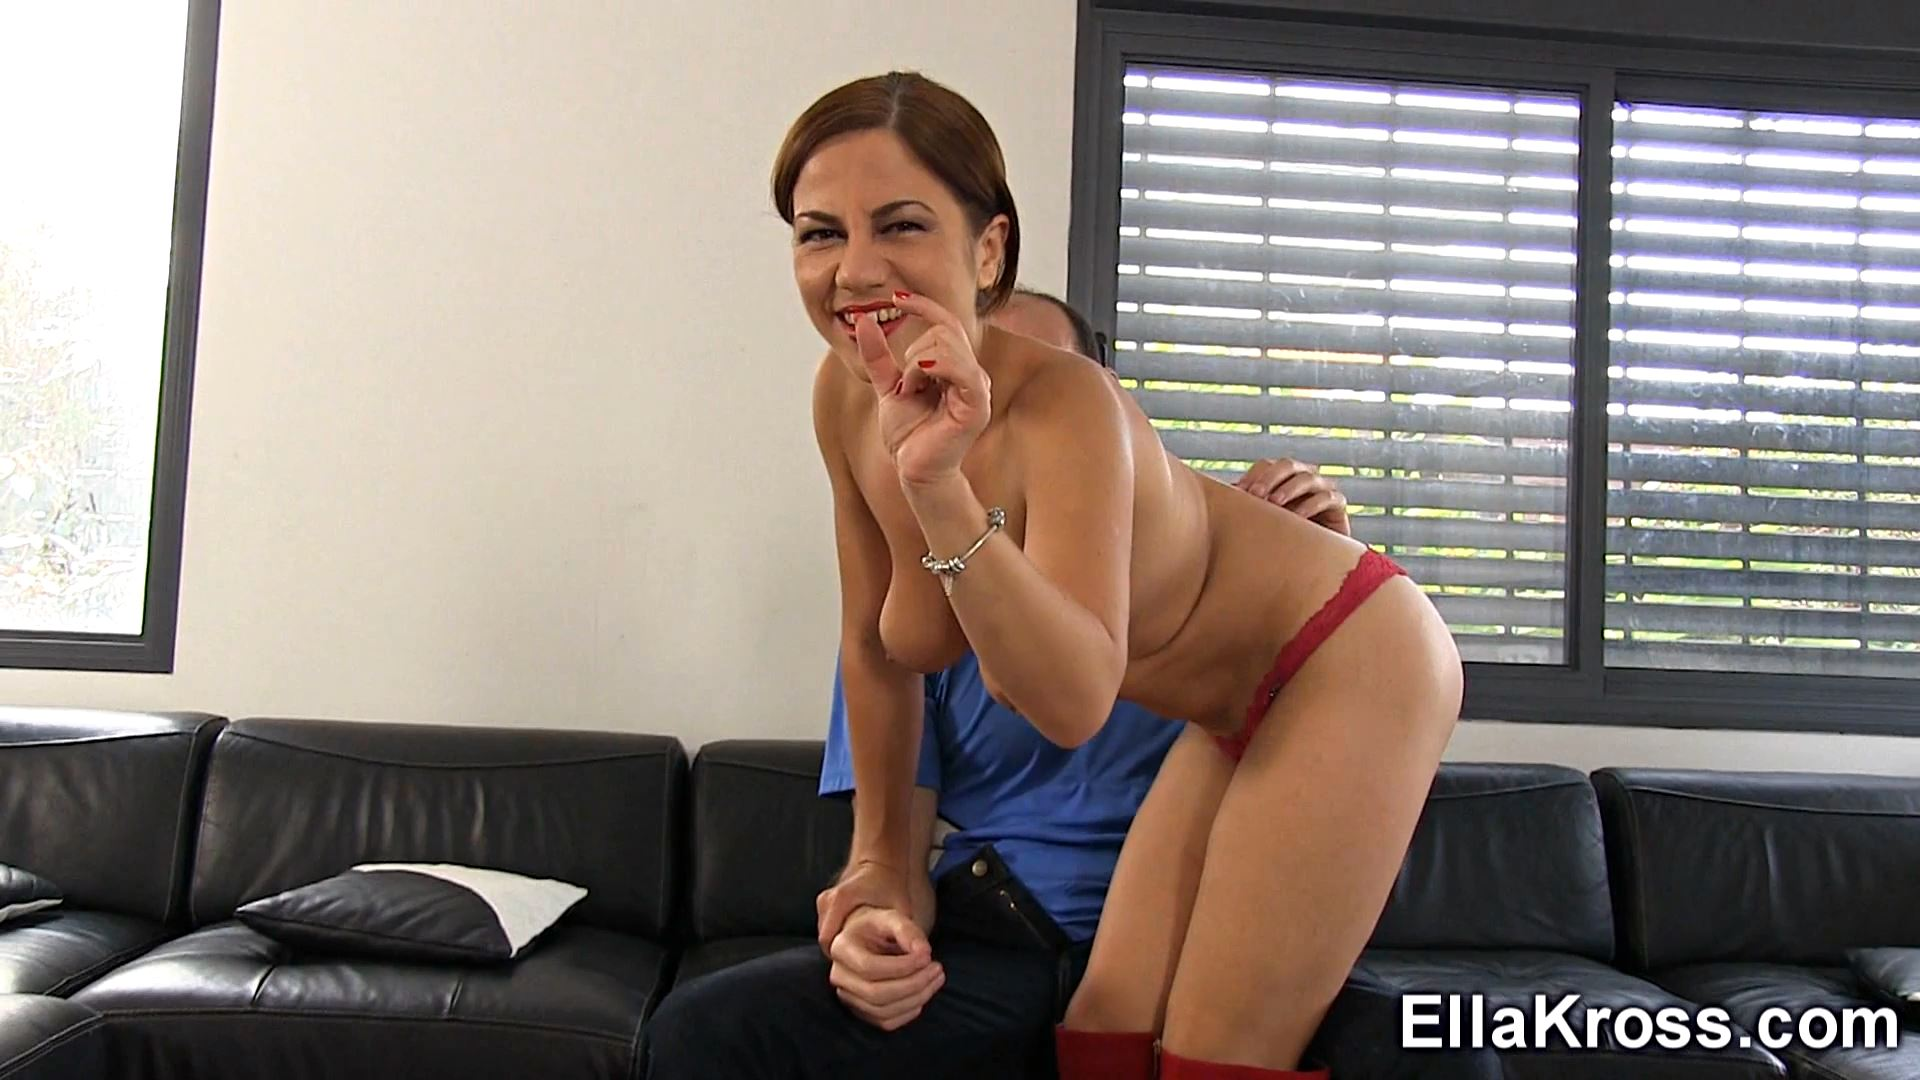 Ella Kross In Scene: Lap Dance with Small Cock Humiliation - ELLAKROSS - FULL HD/1080p/MP4